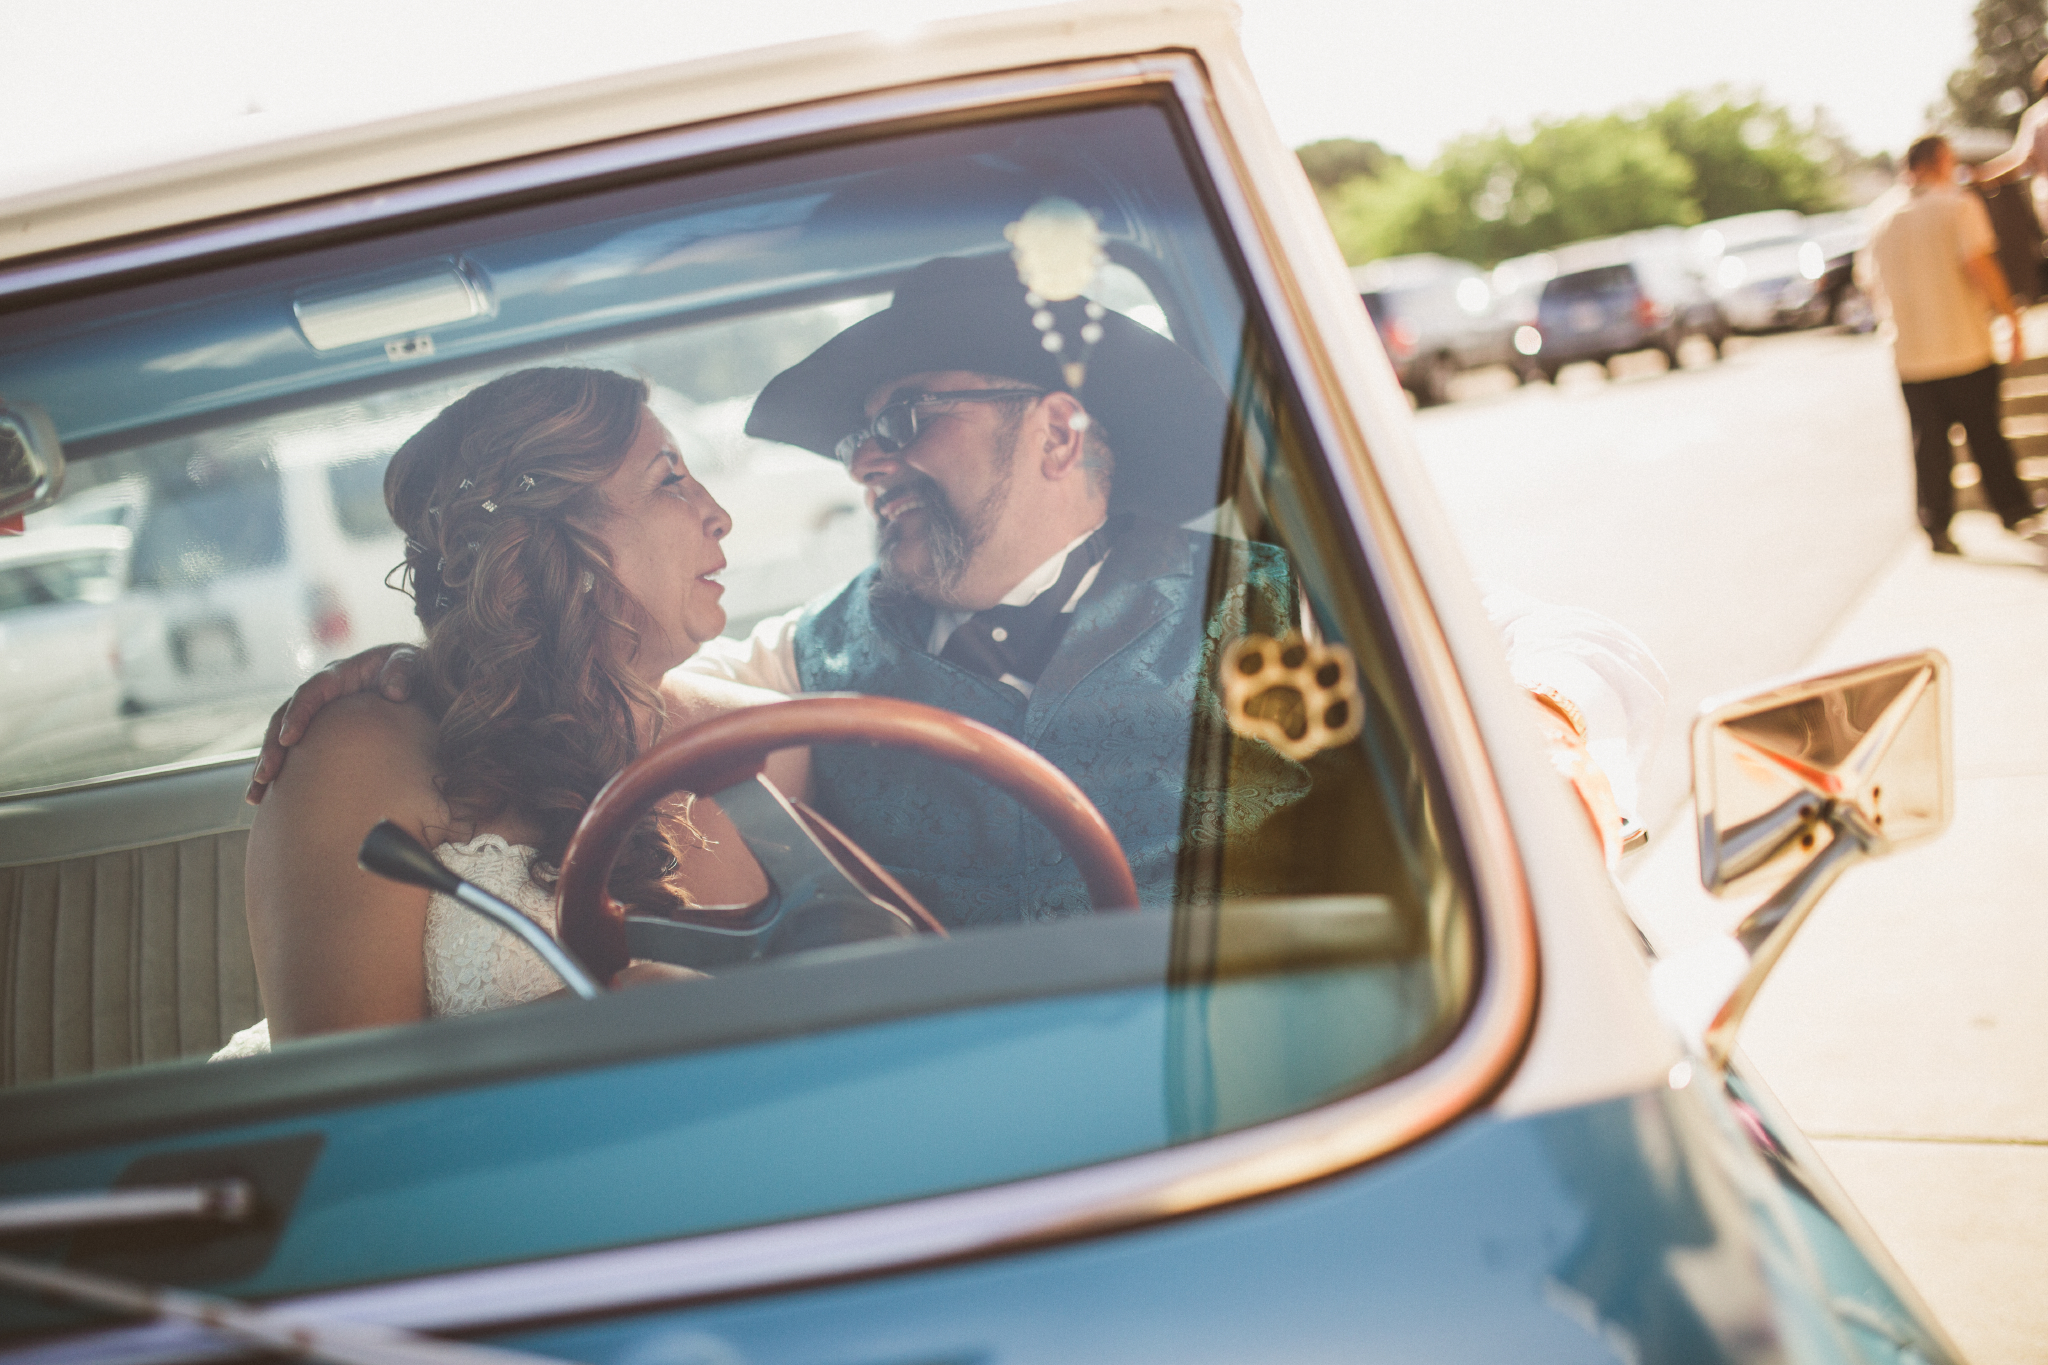 san diego wedding   photographer   groom with cowboy hat and bride facing each other and laughing   inside blue pickup truck with man in background